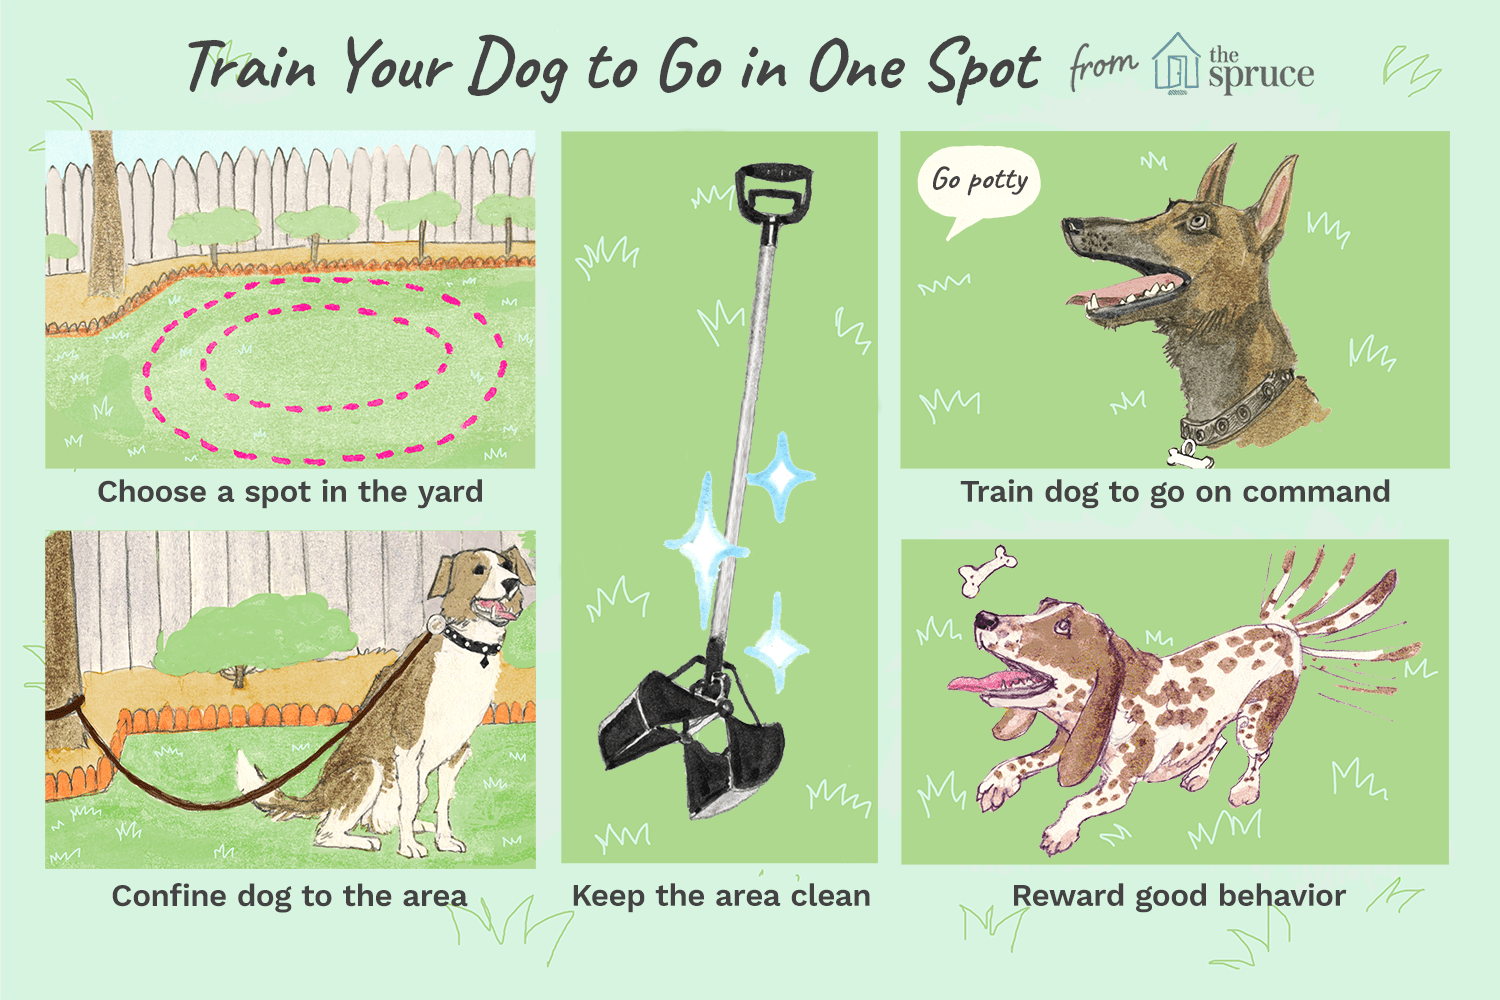 To Train Your Dog Go Potty In One Spot